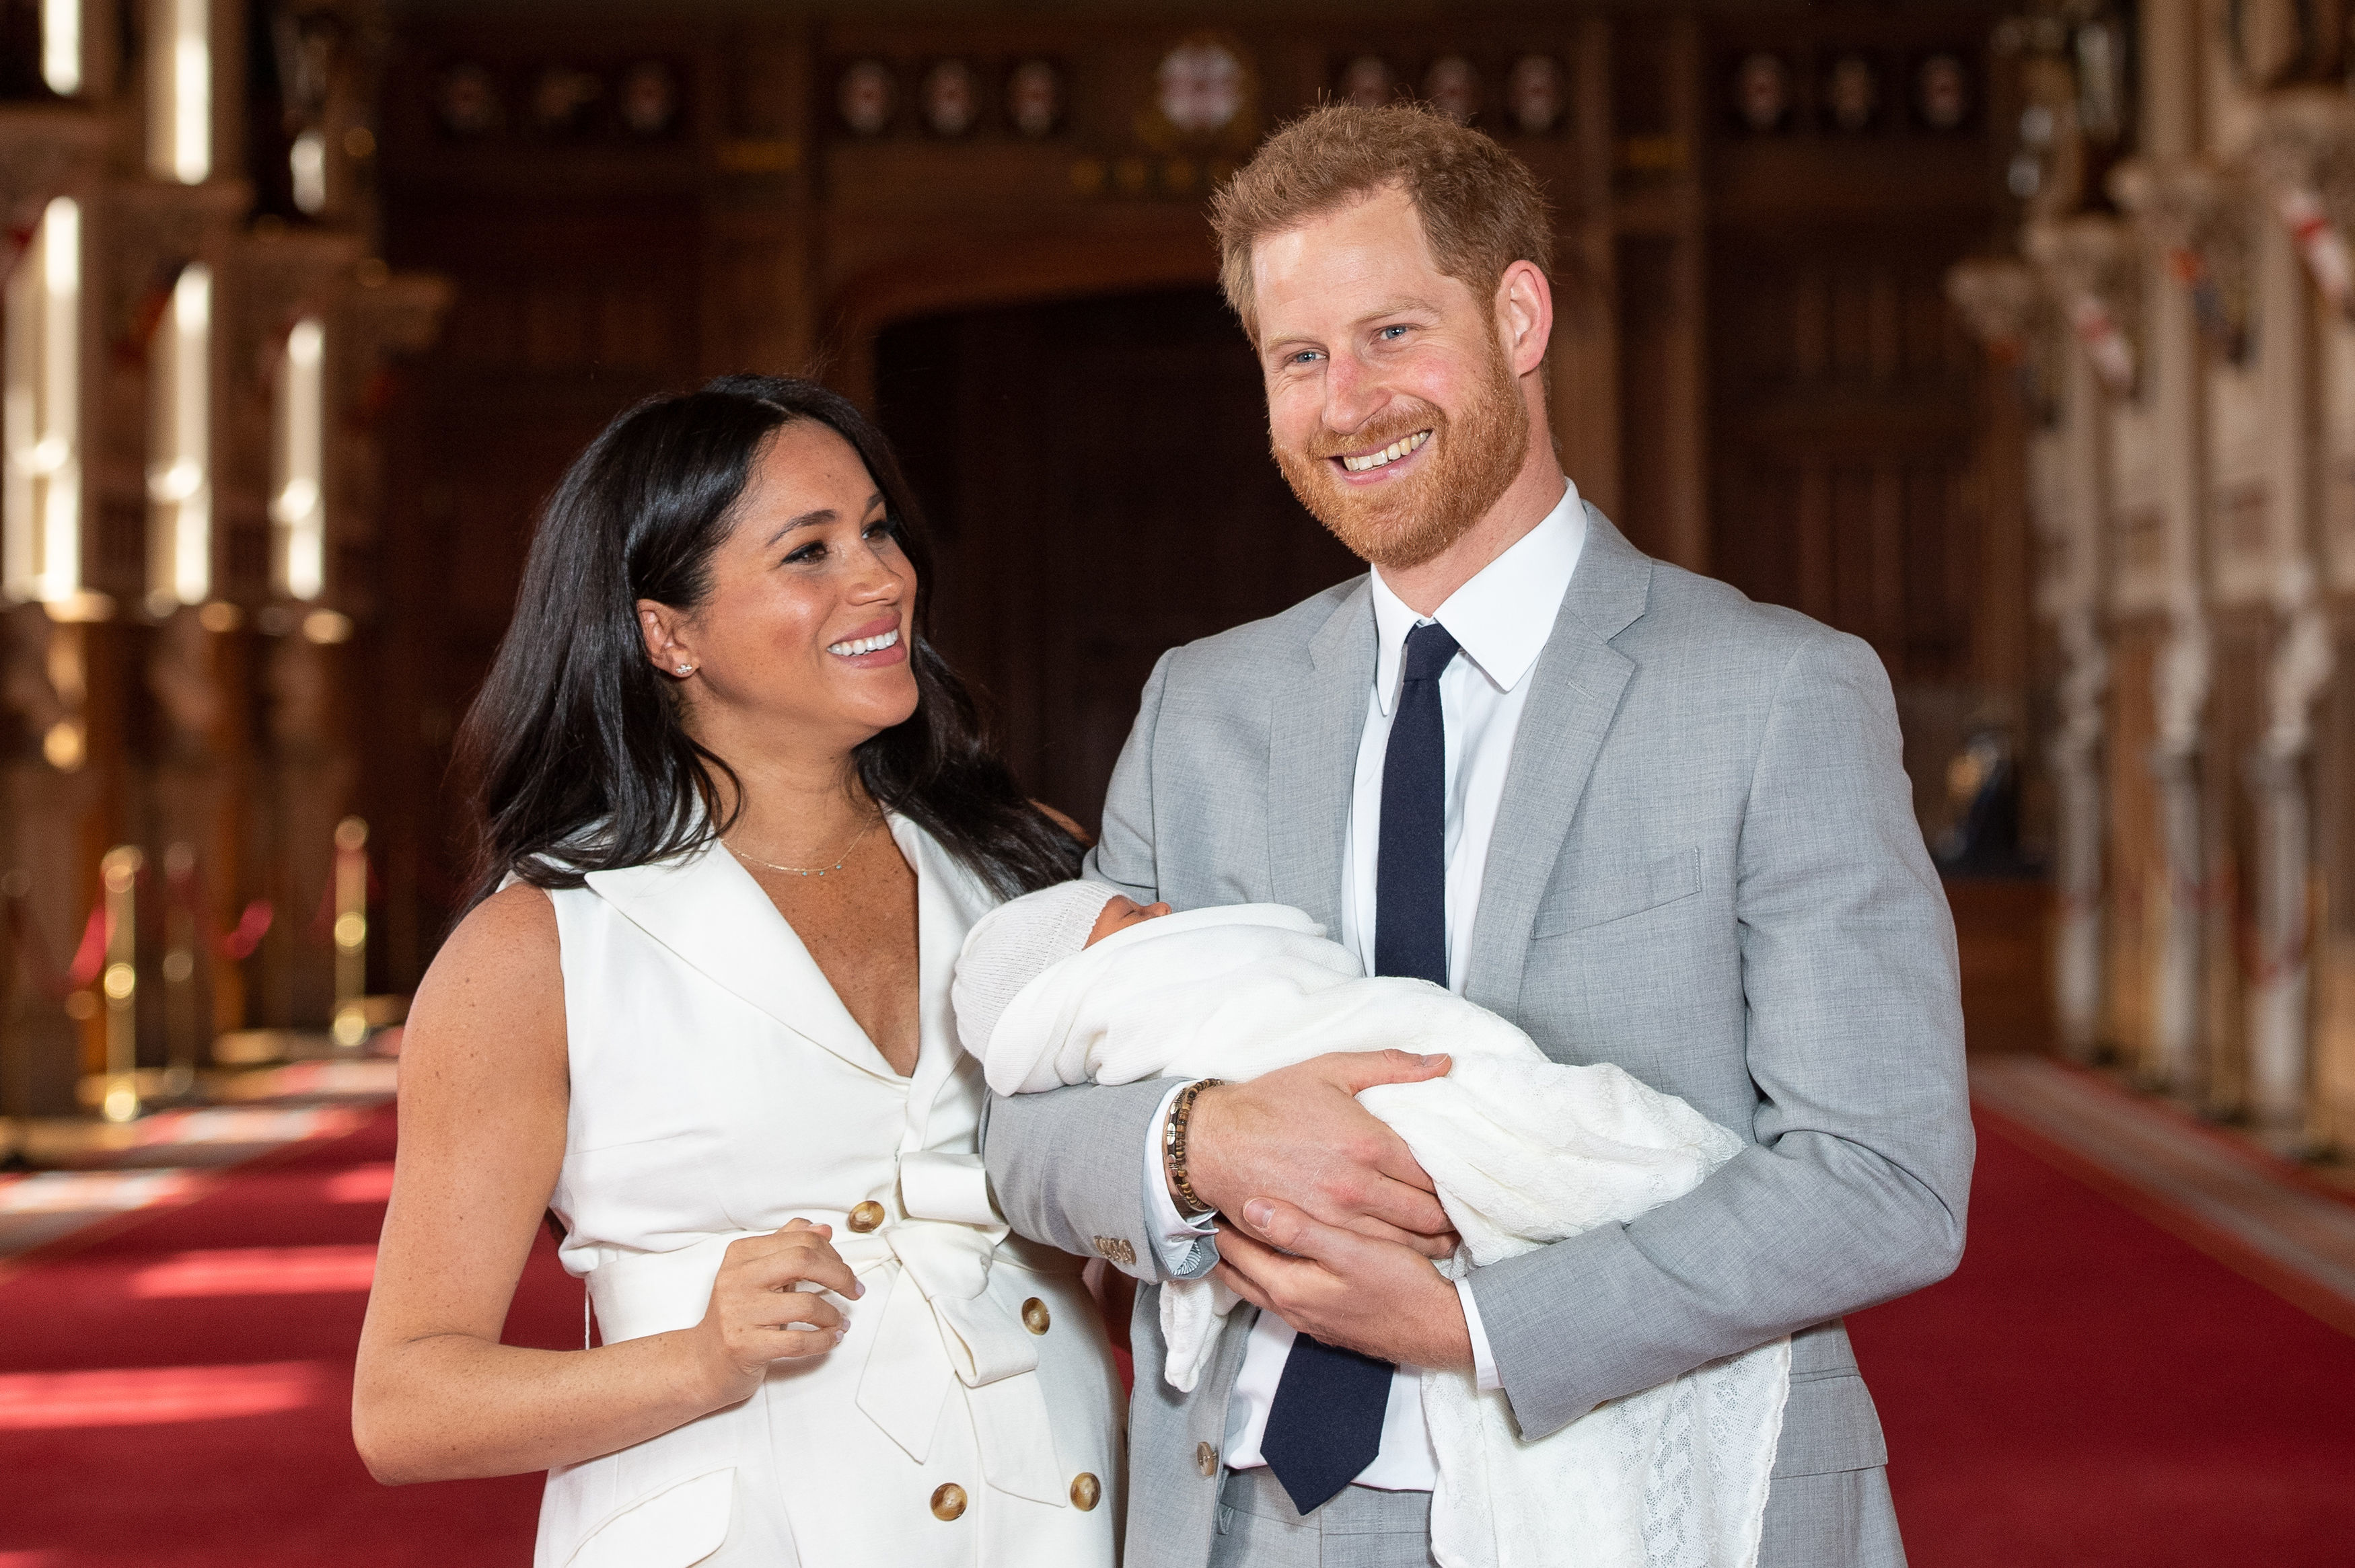 Mommy Duties! Duchess Meghan Had to Rush Out of a Royal Engagement to 'Feed' Baby Archie